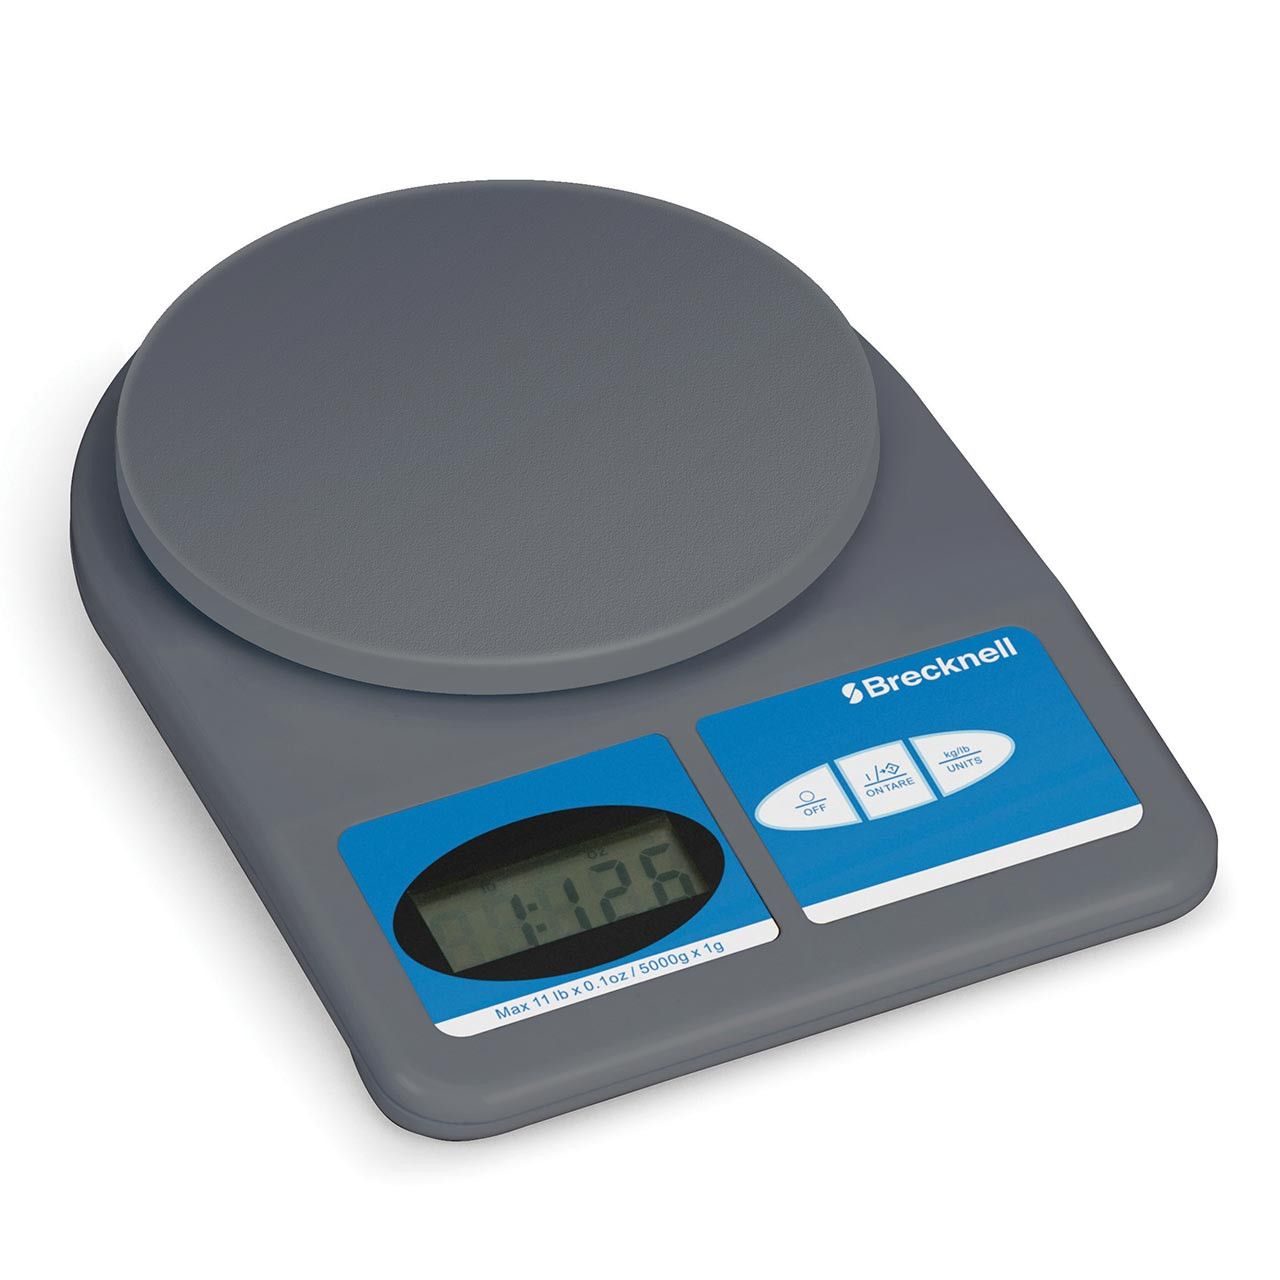 Basic office scale for simple weighing